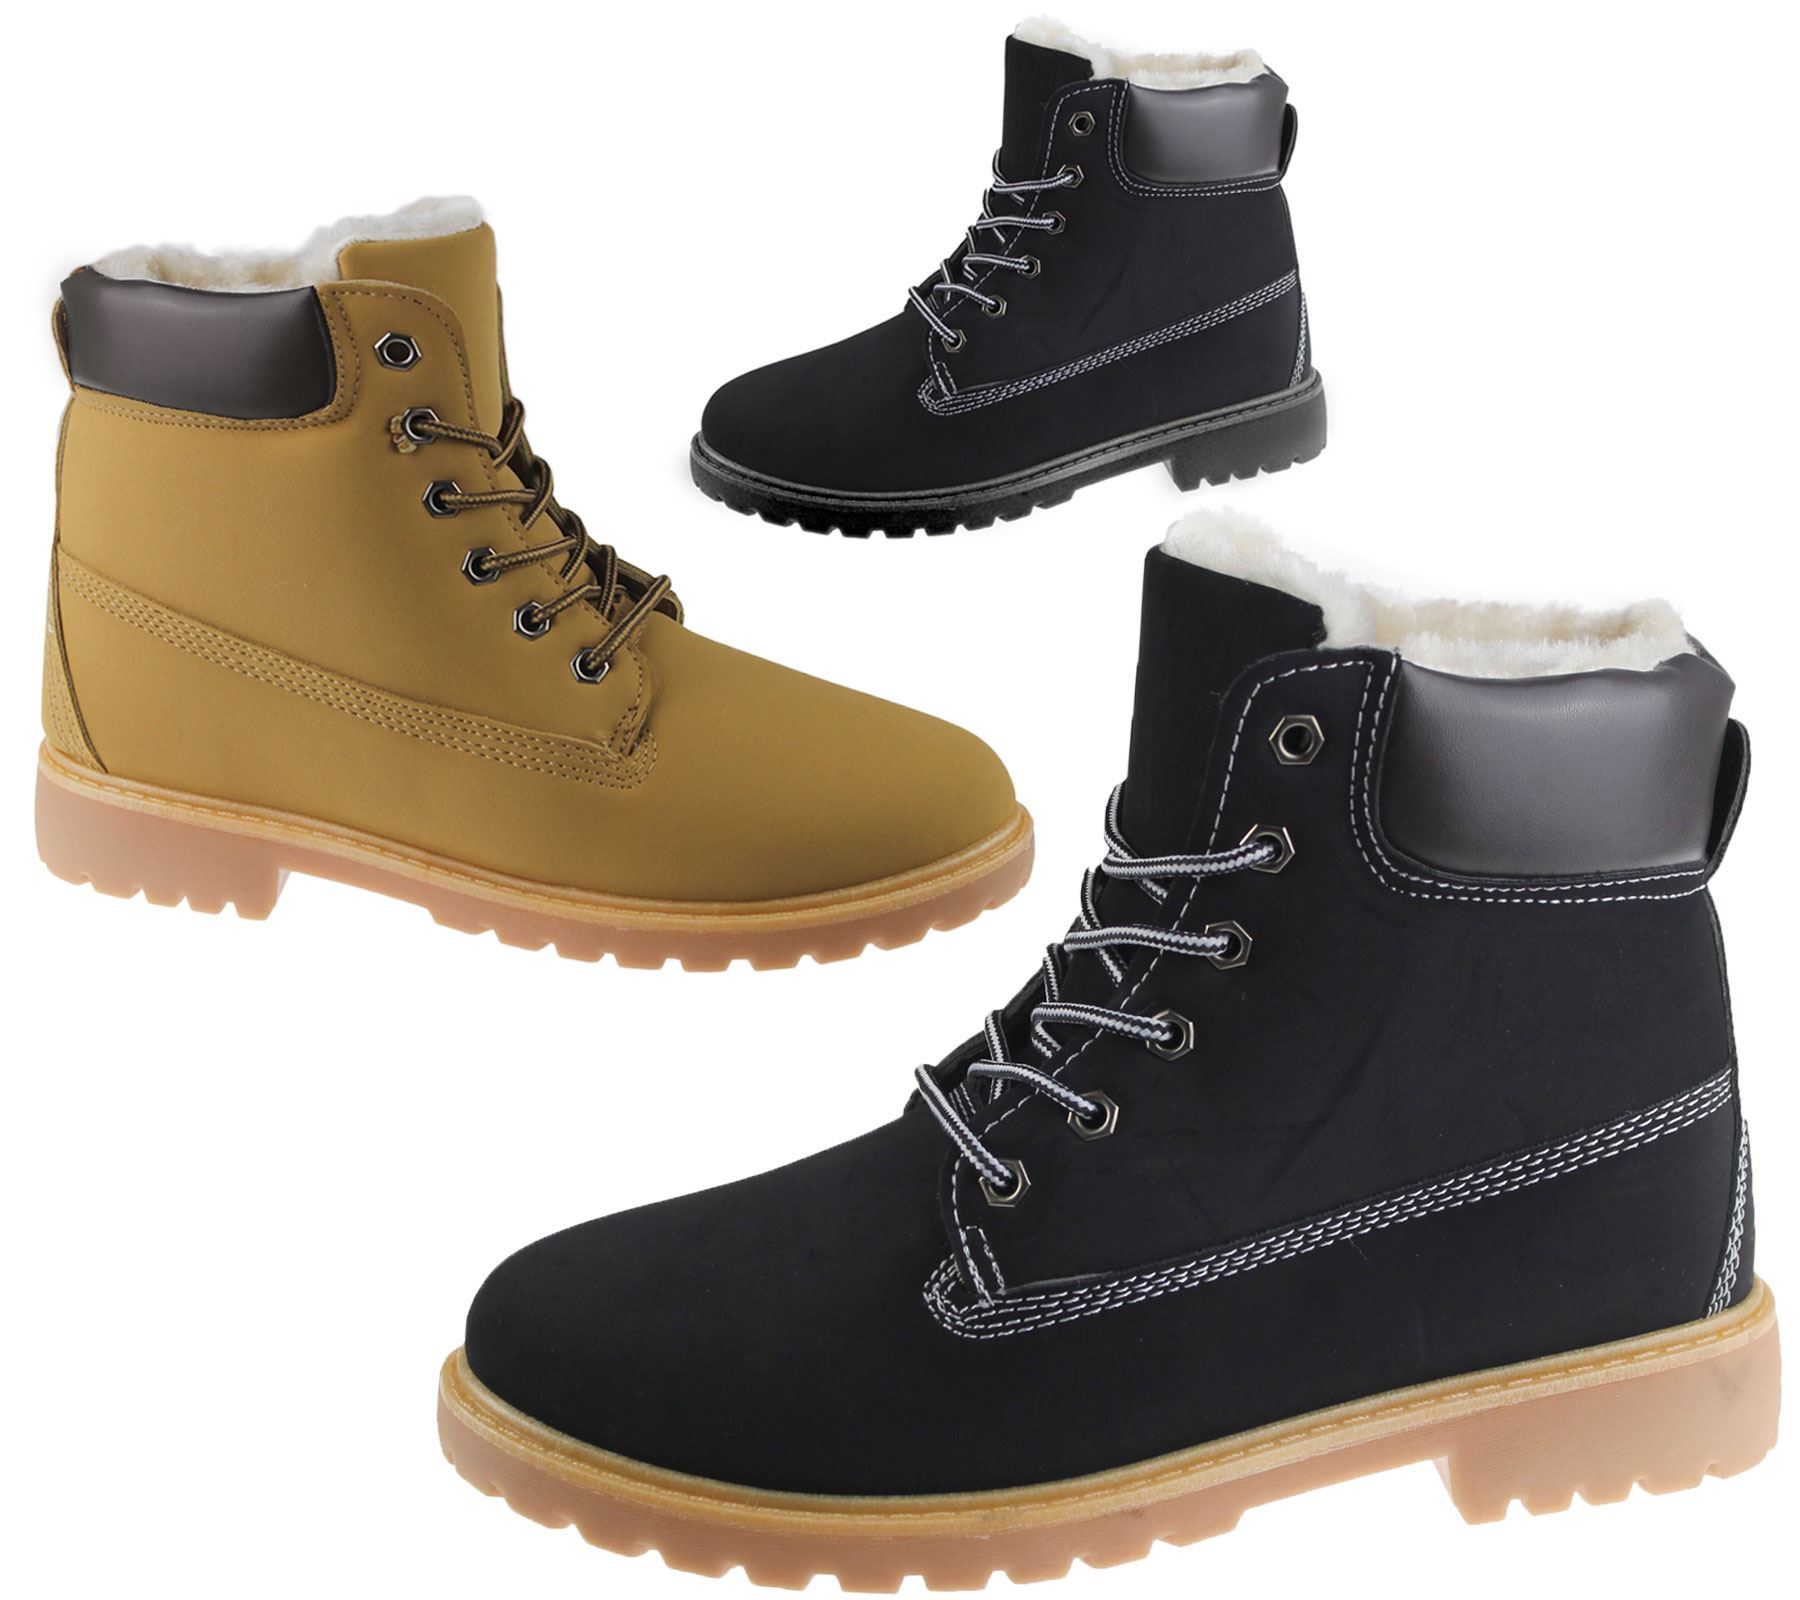 479ae628ae249e Womens Fur Lined Ankle Combat Boots Rubber Grip Sole Ladies Winter Shoes  Size